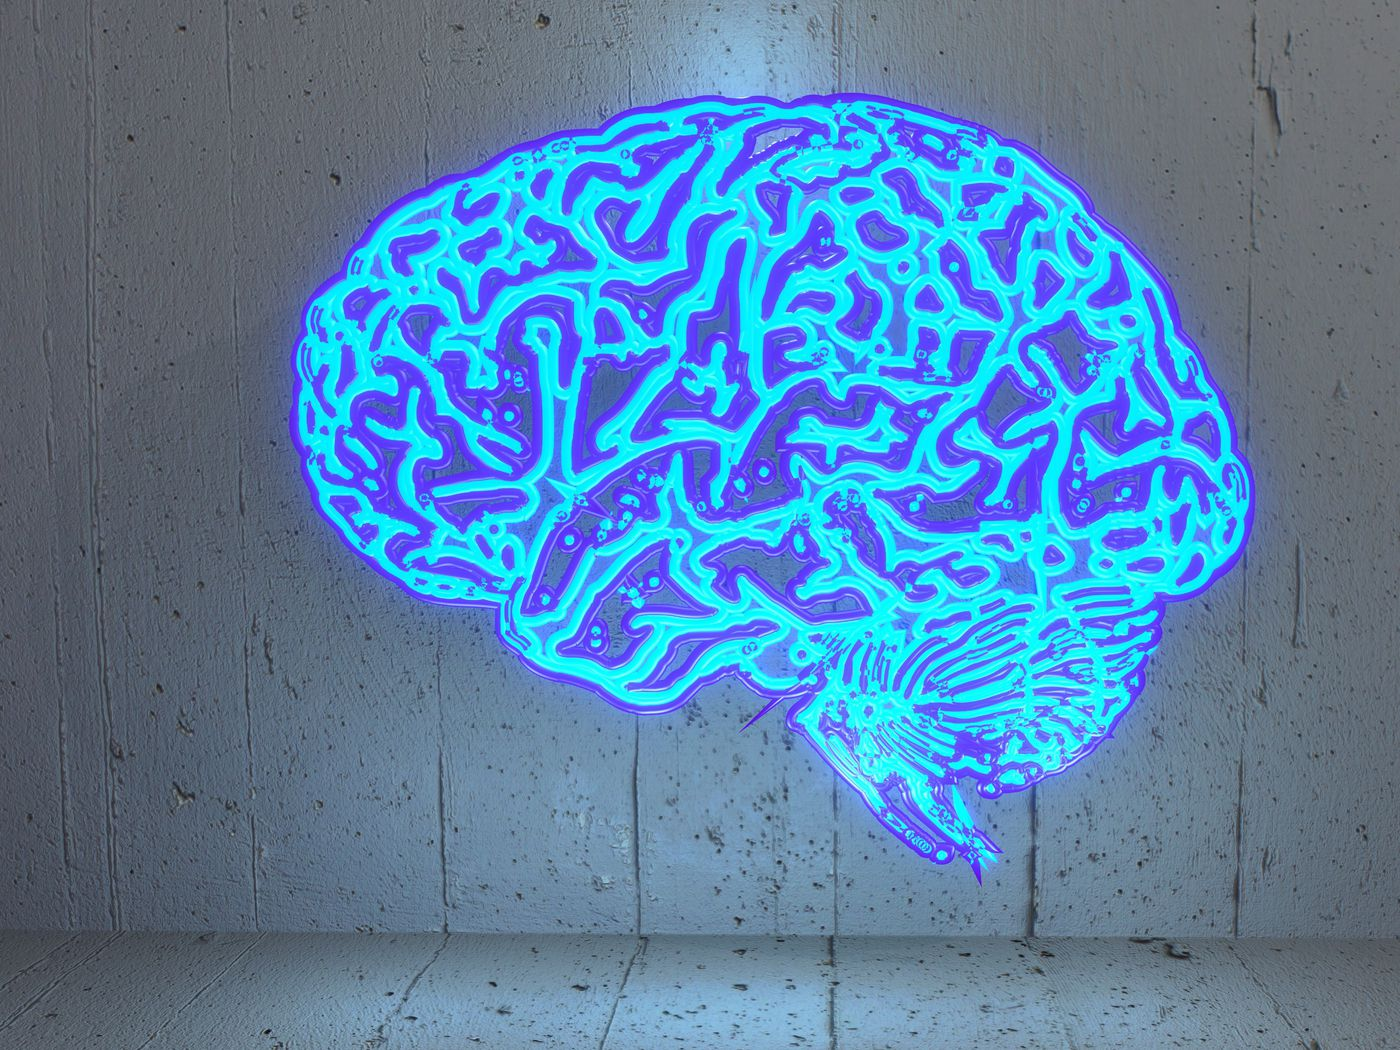 Brain Training Doesnt Make You Smarter >> Brain Training Games Don T Boost Iq Here S What Does Vox